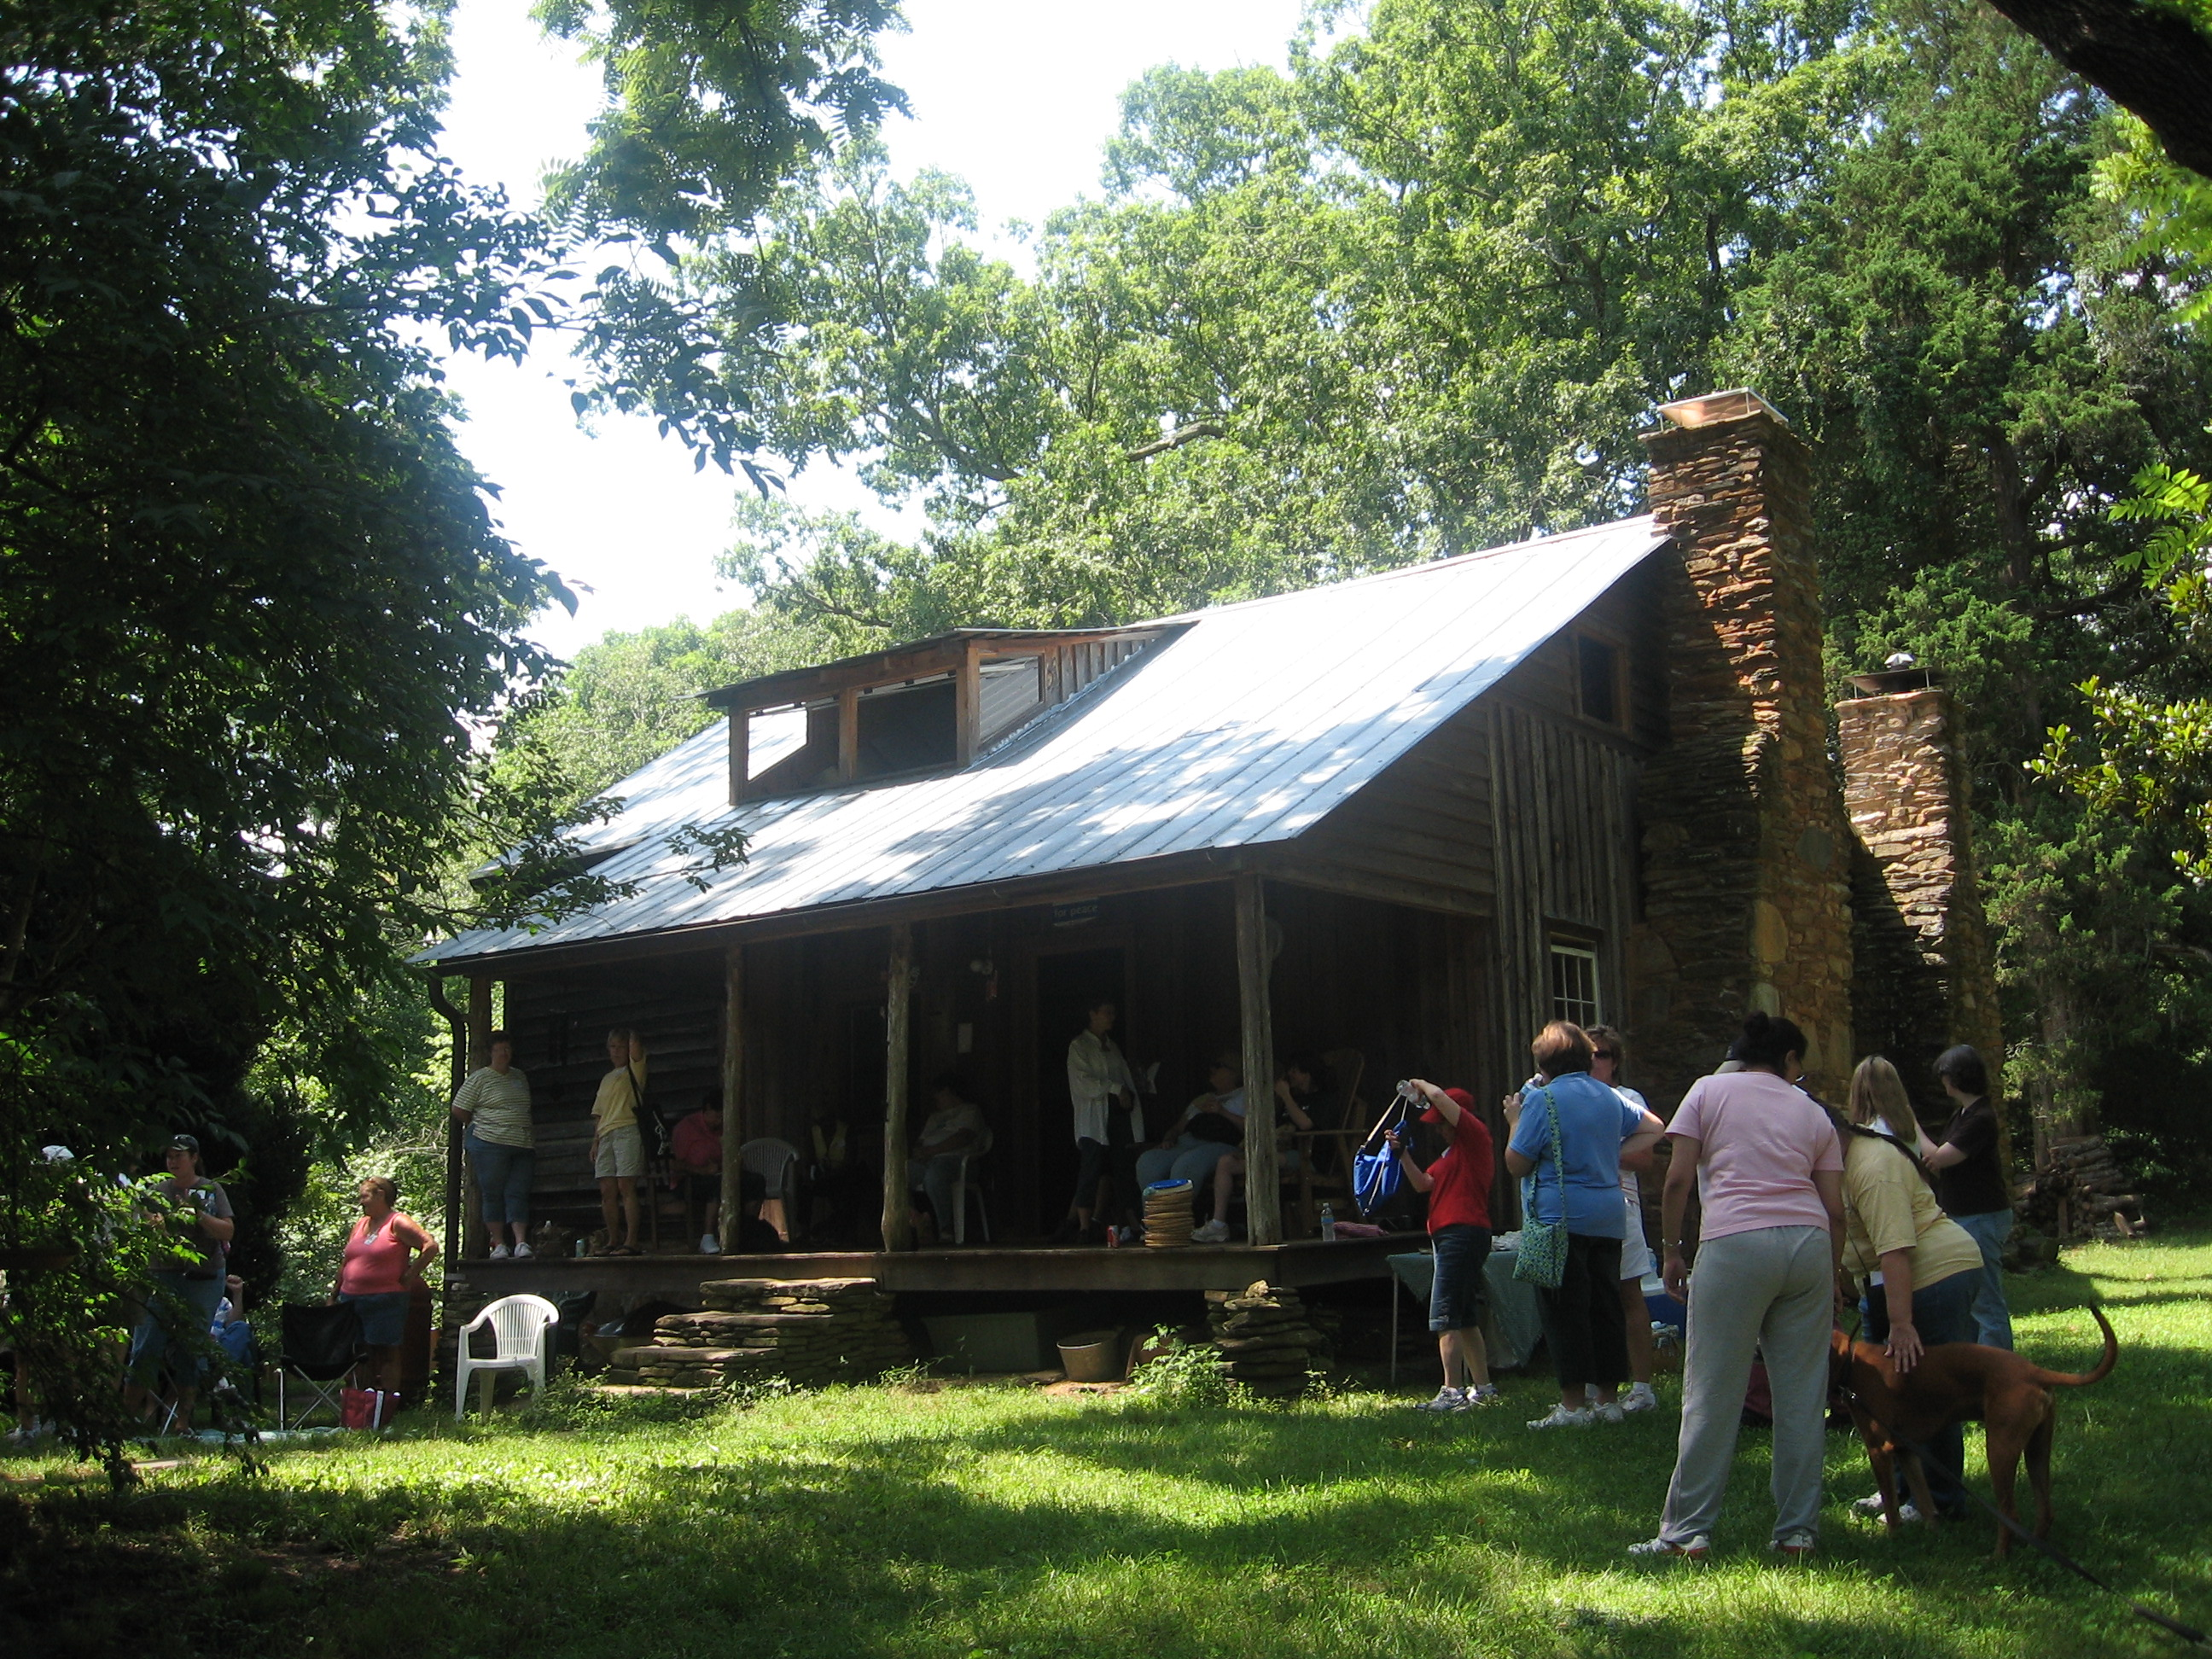 Visitors at the circa 1843 Power Cabin, one of the rare examples of a single-pen (one room) log house remaining in Cobb County. Although a framed addition was added later, the original hand-hewn, squared-and-notched log construction is still visible.